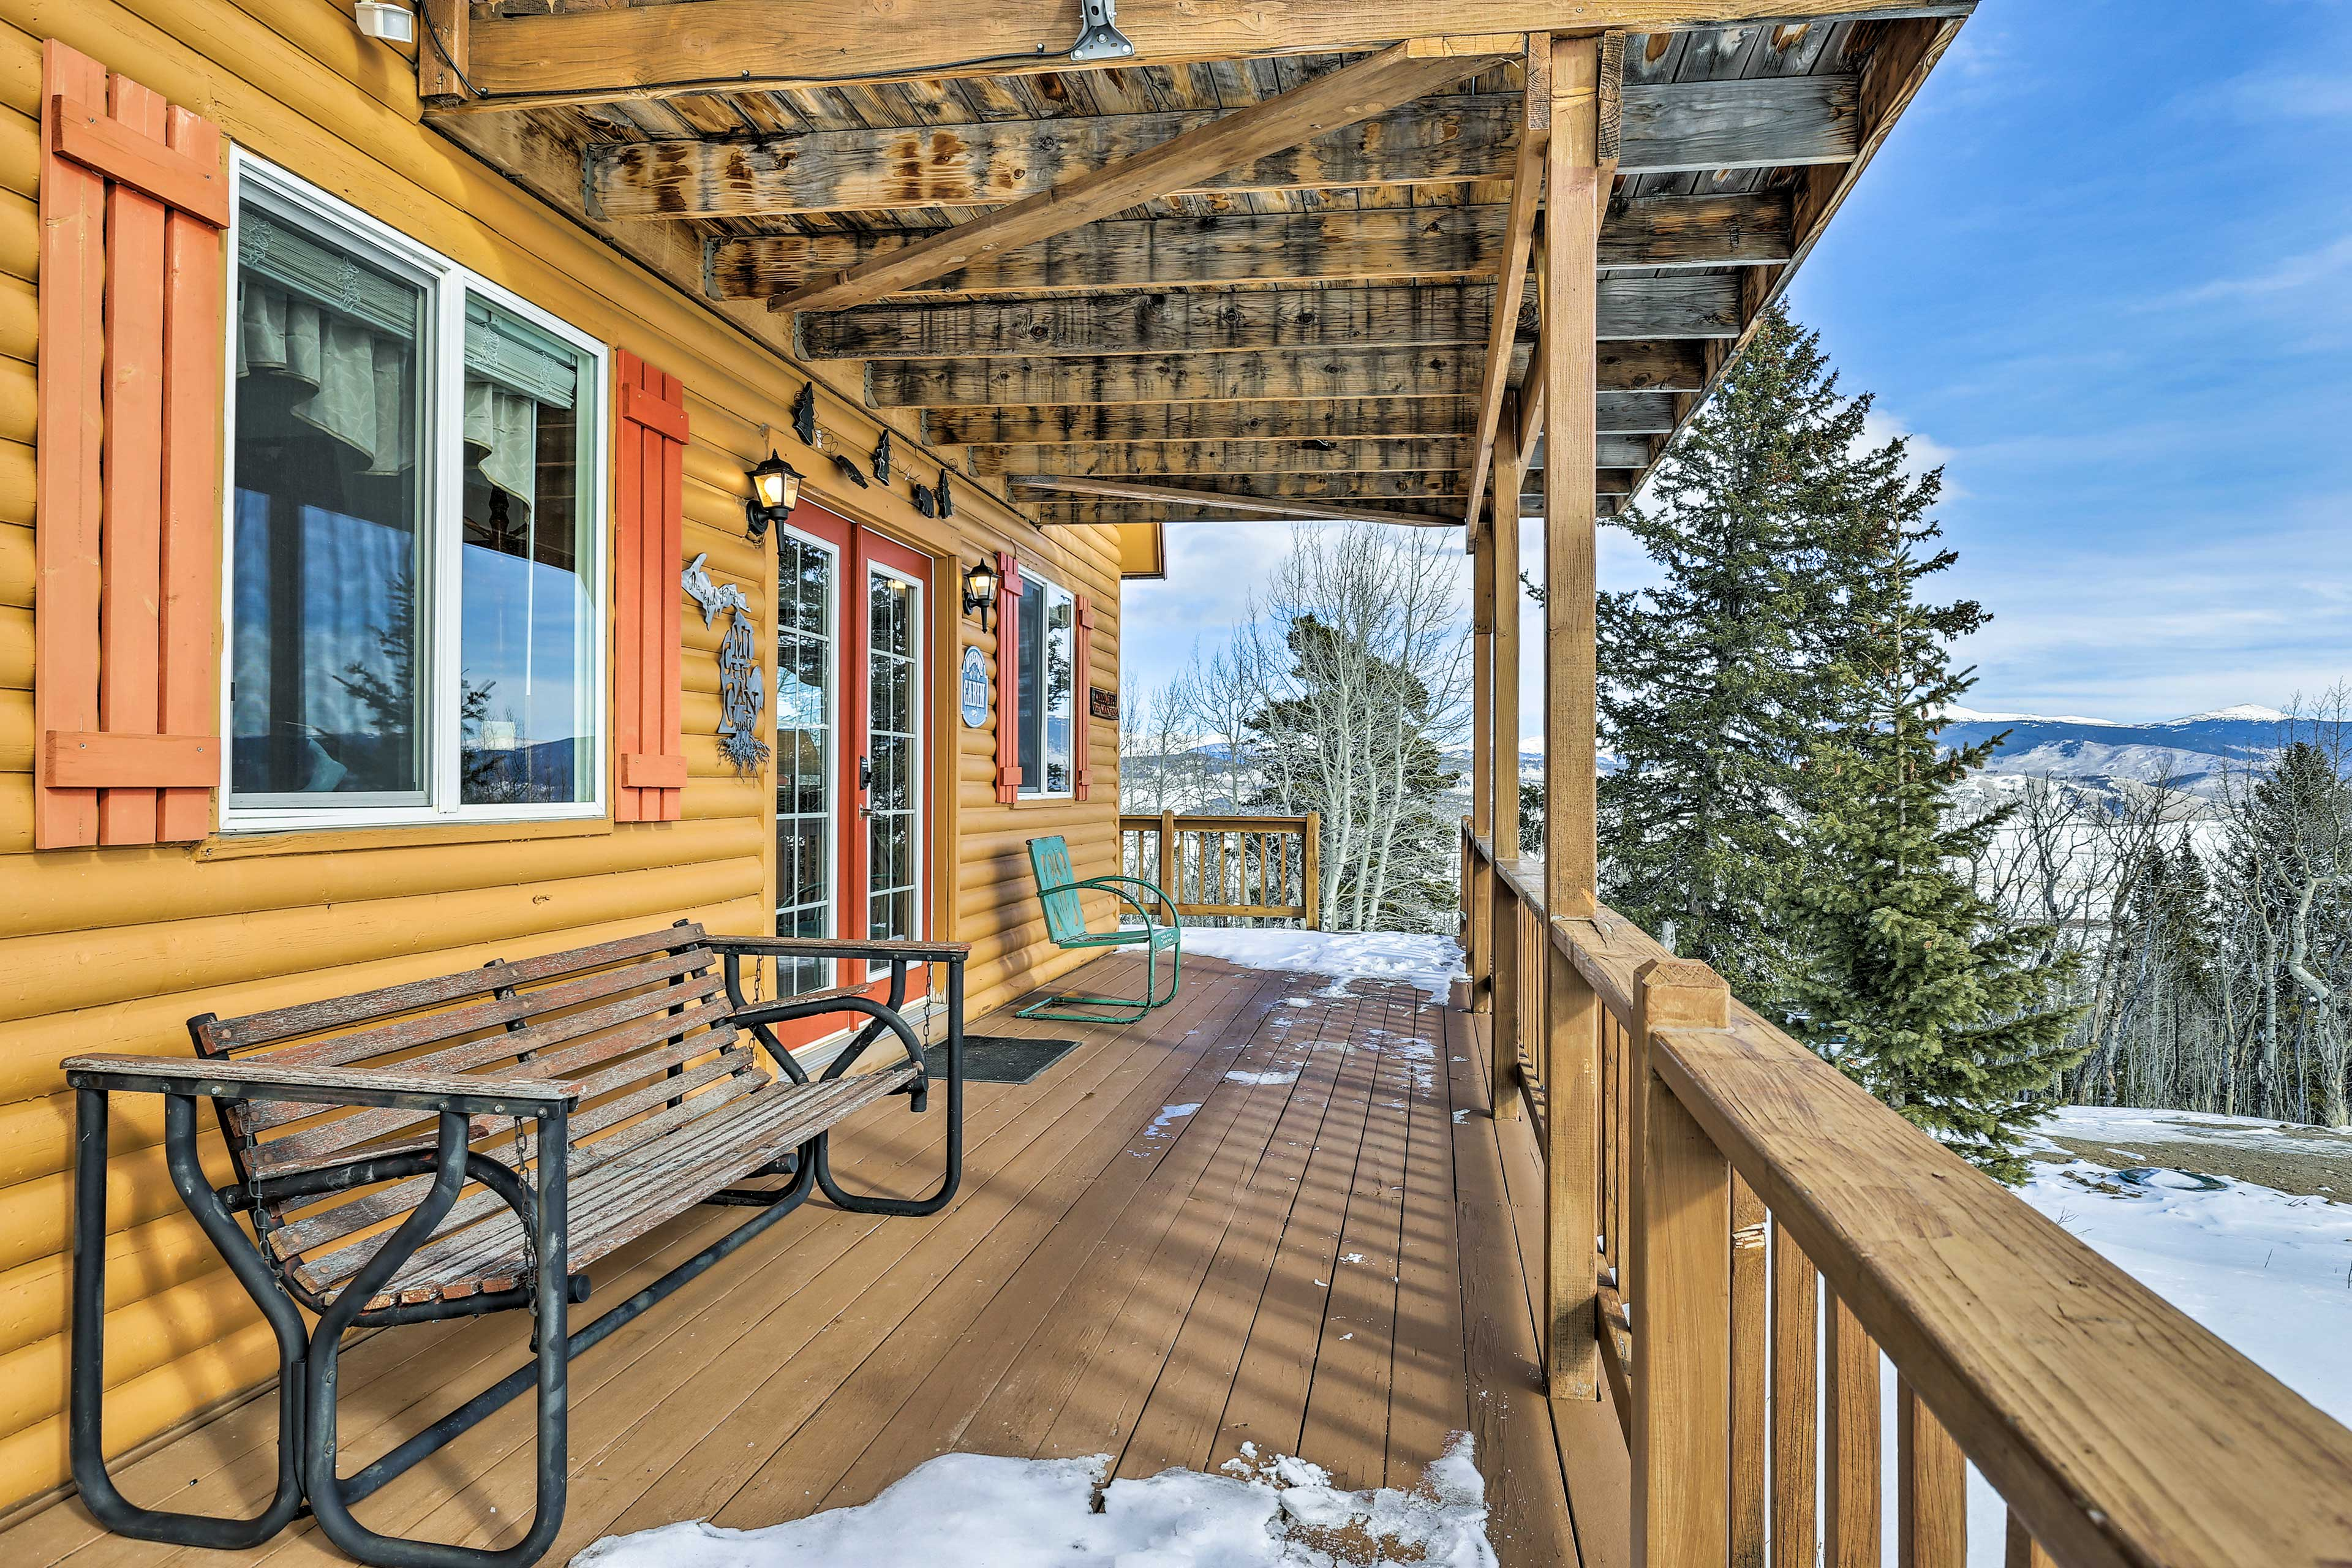 Enjoy a steaming cup of coffee on the furnished deck.